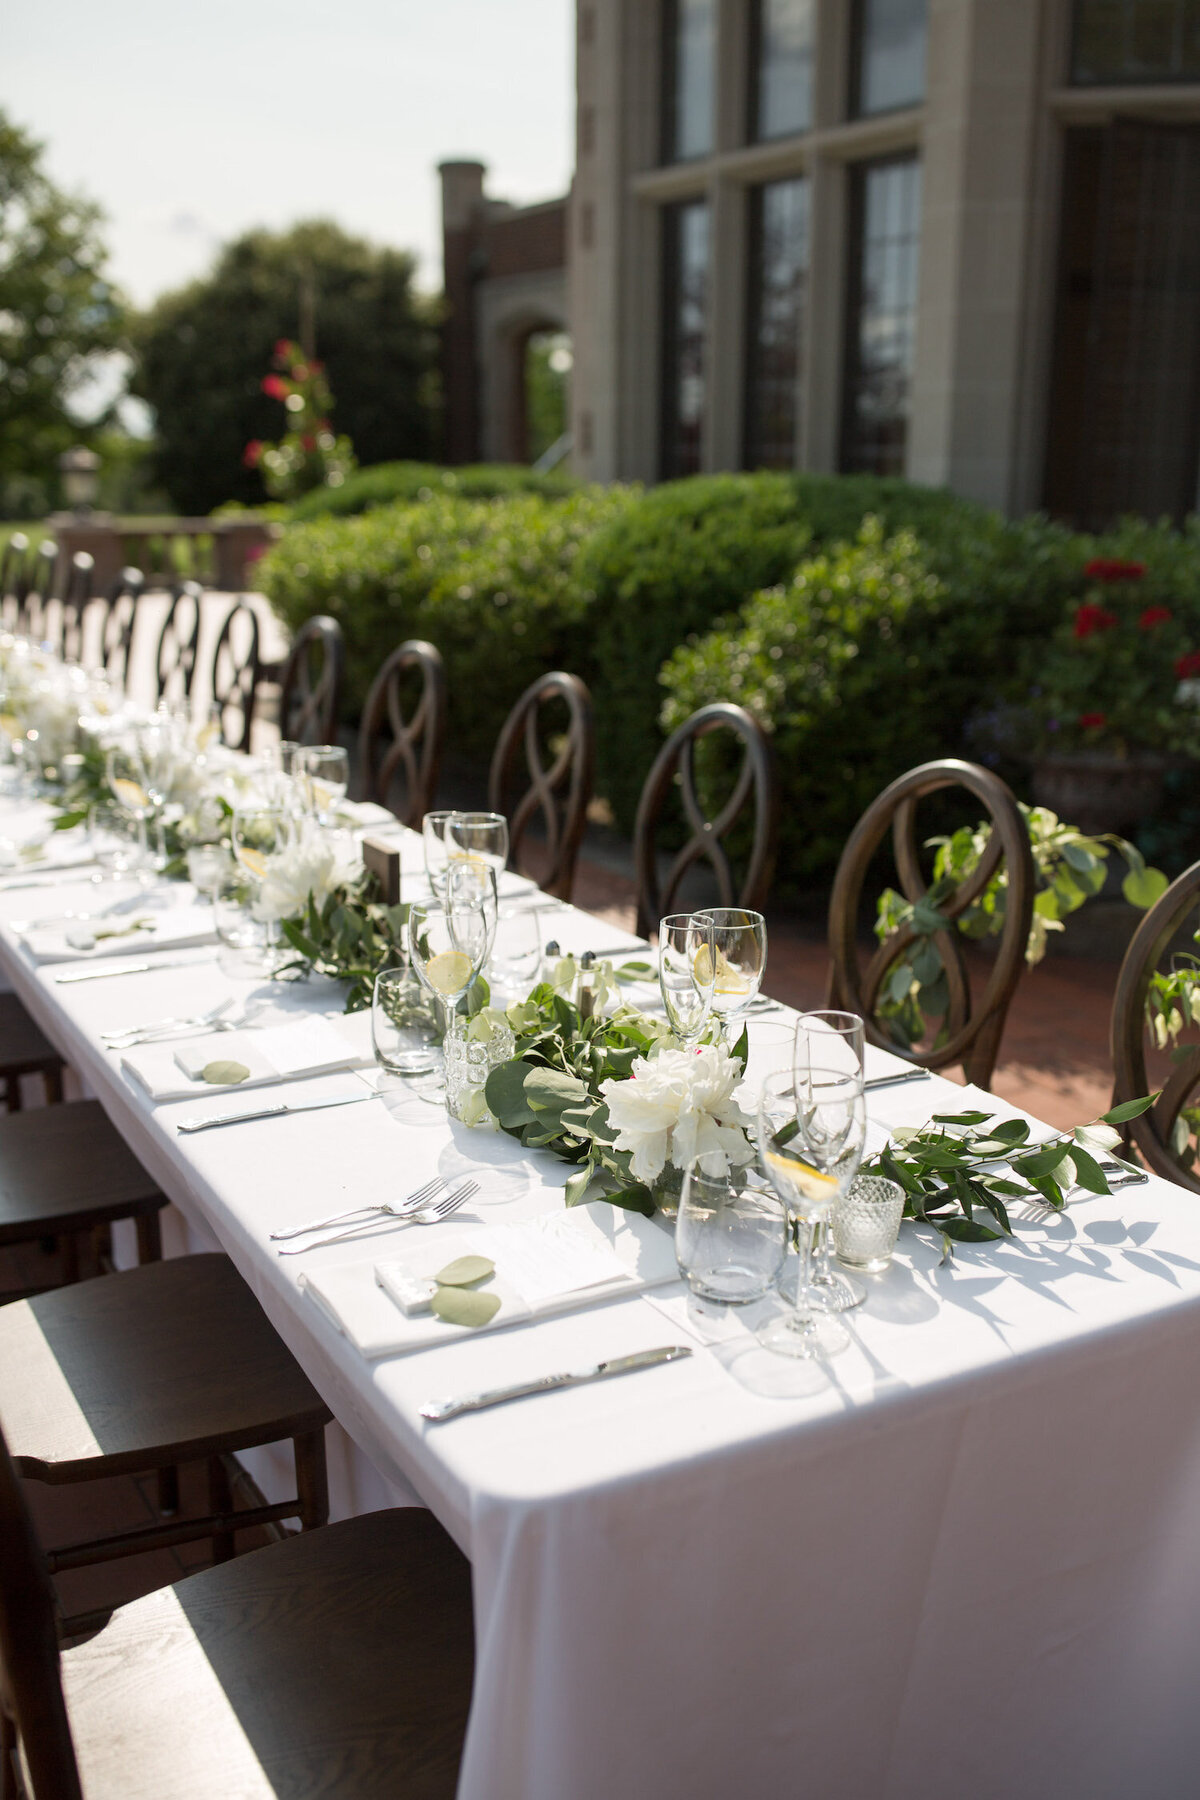 waveny-house-wedding-catering-forks-and-fingers-catering-7